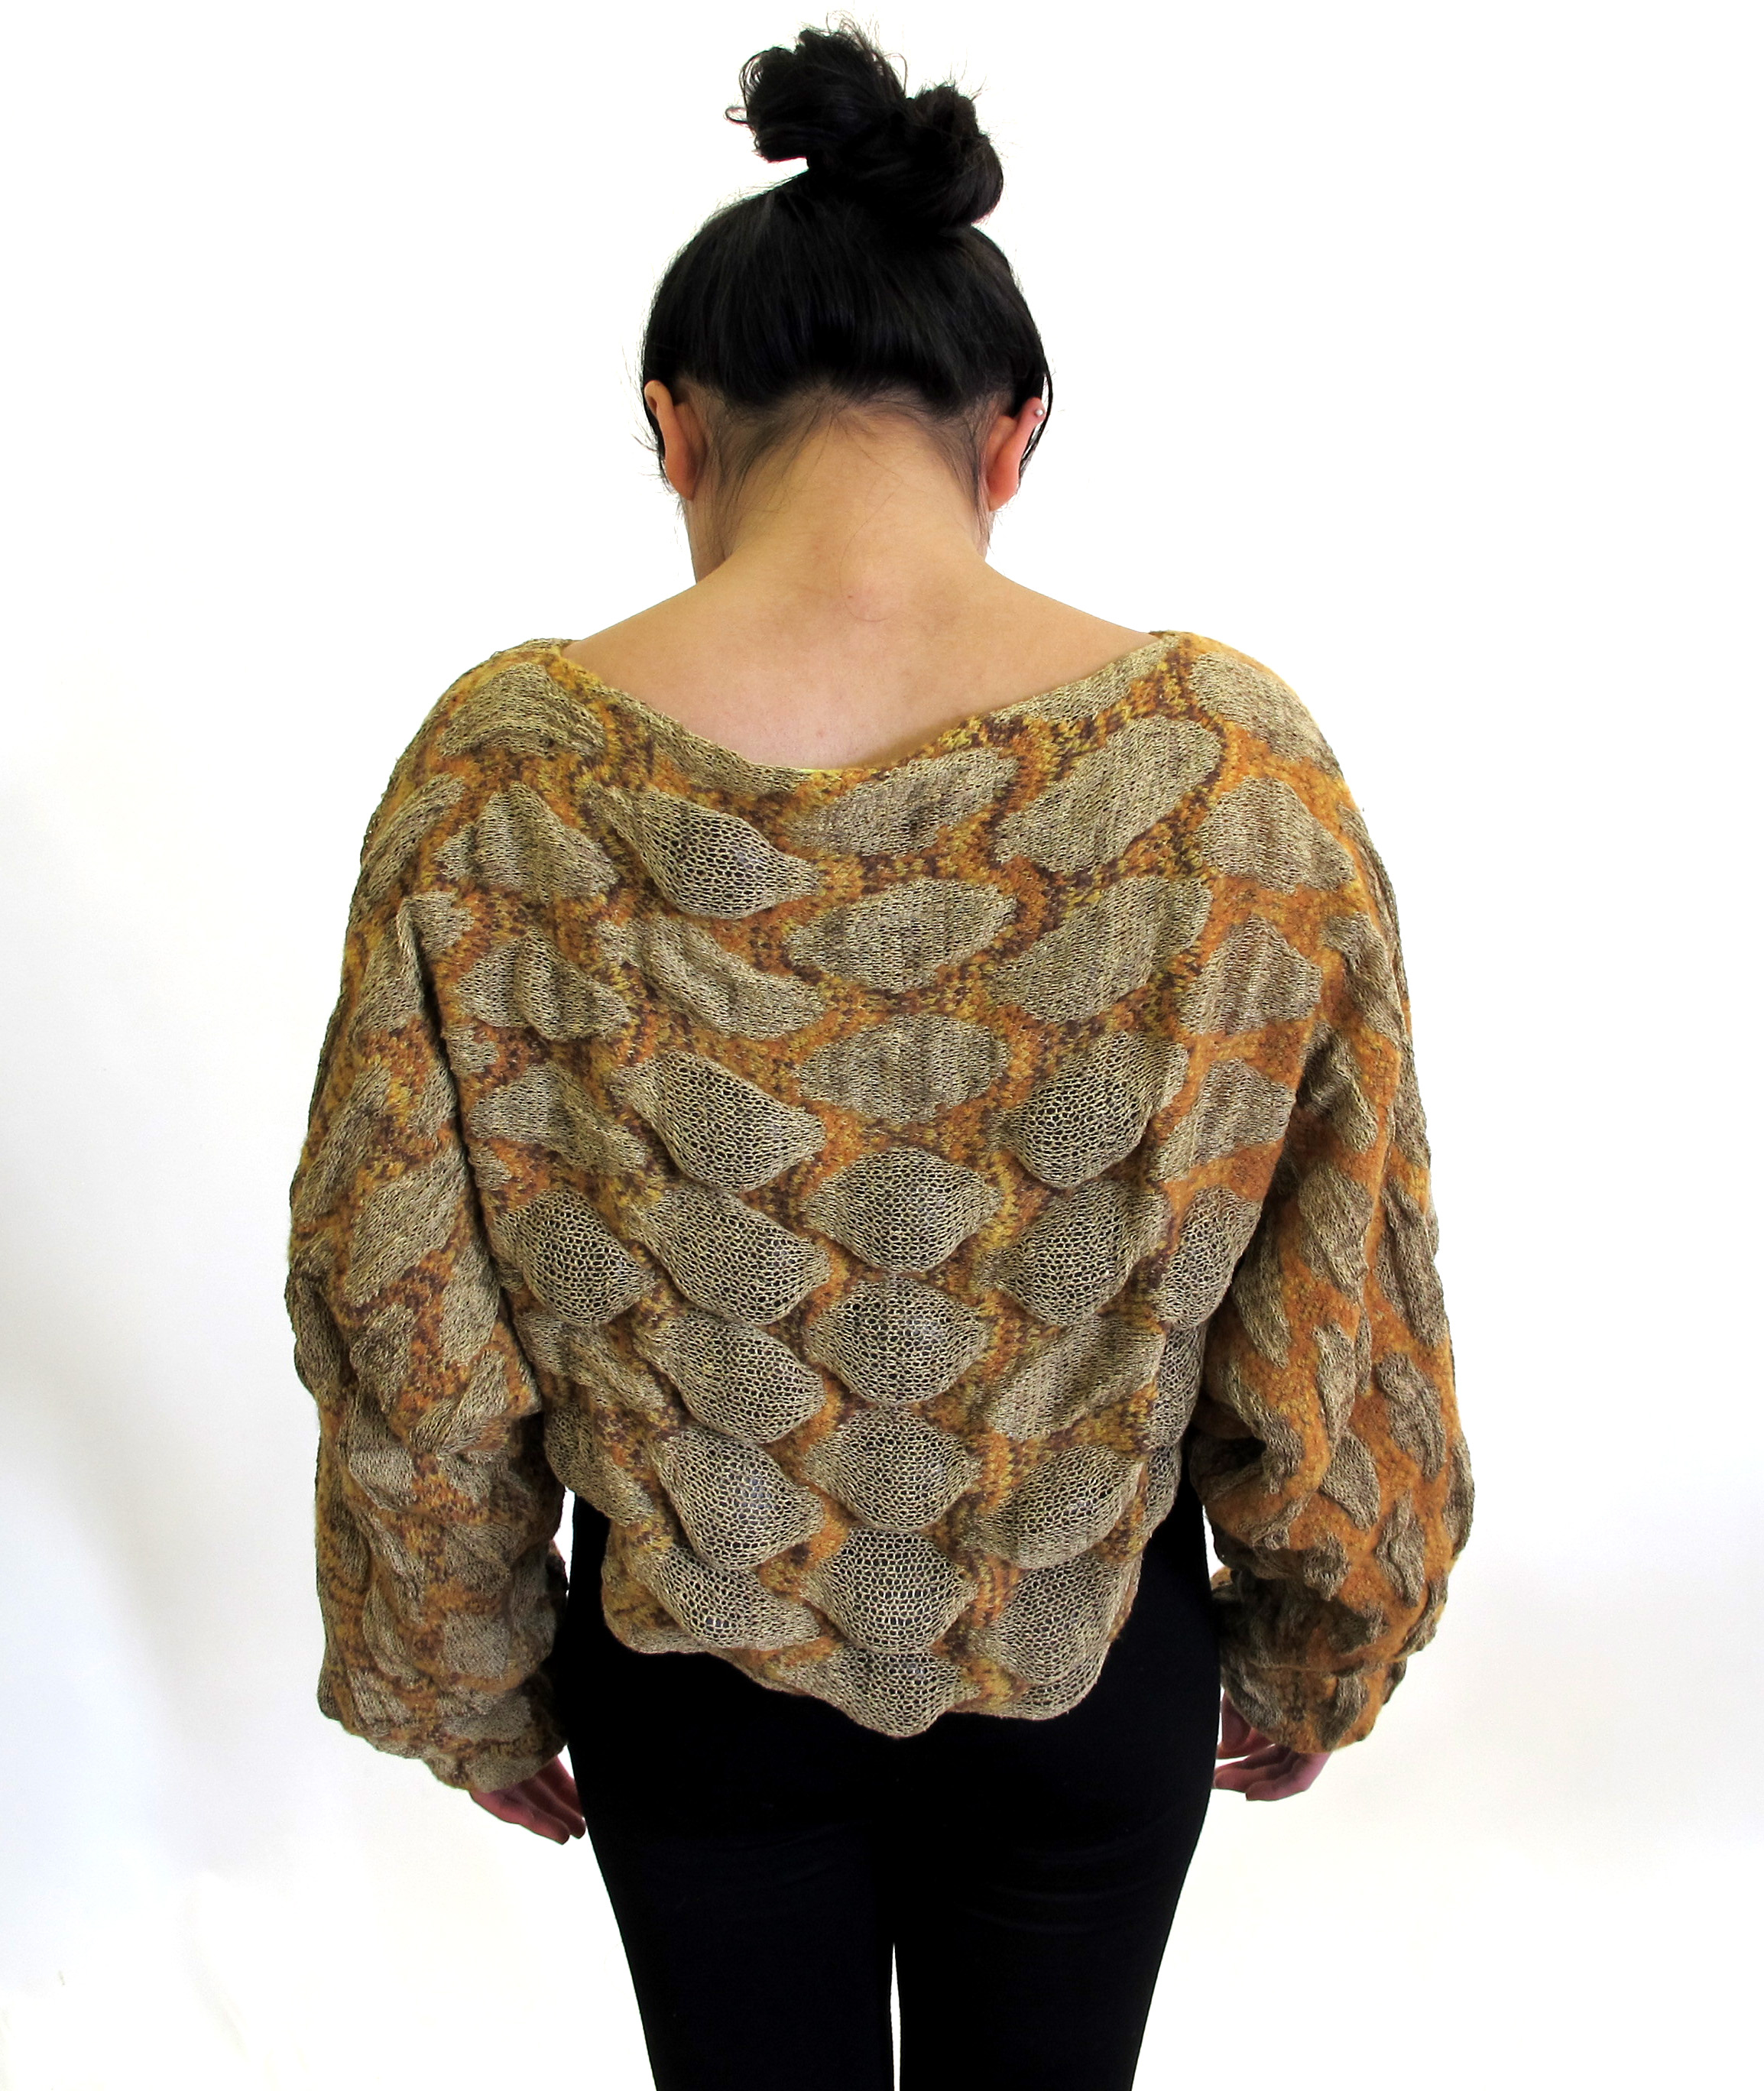 Knit linen and wool garment with seed pods.